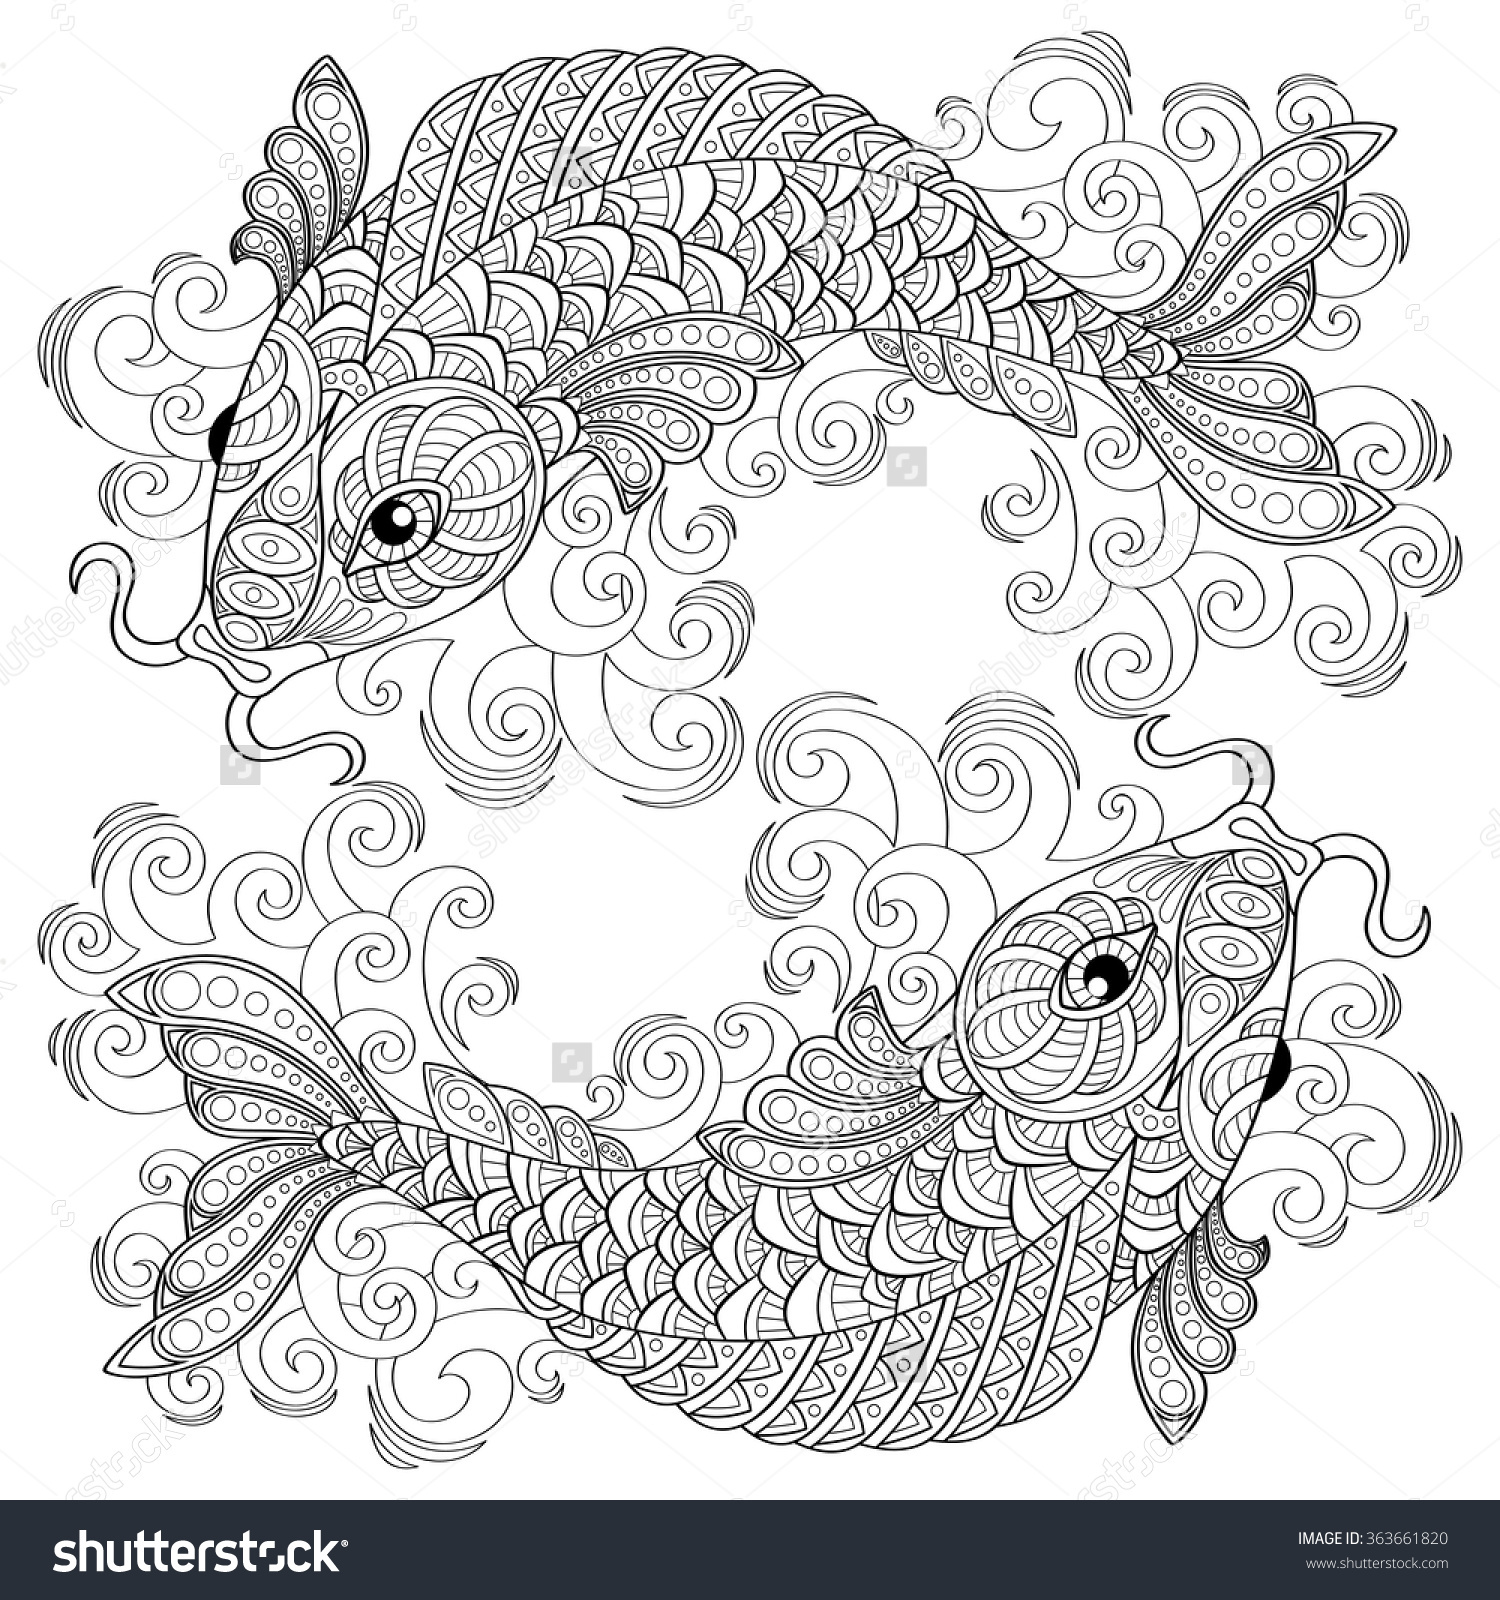 Pisces coloring #8, Download drawings